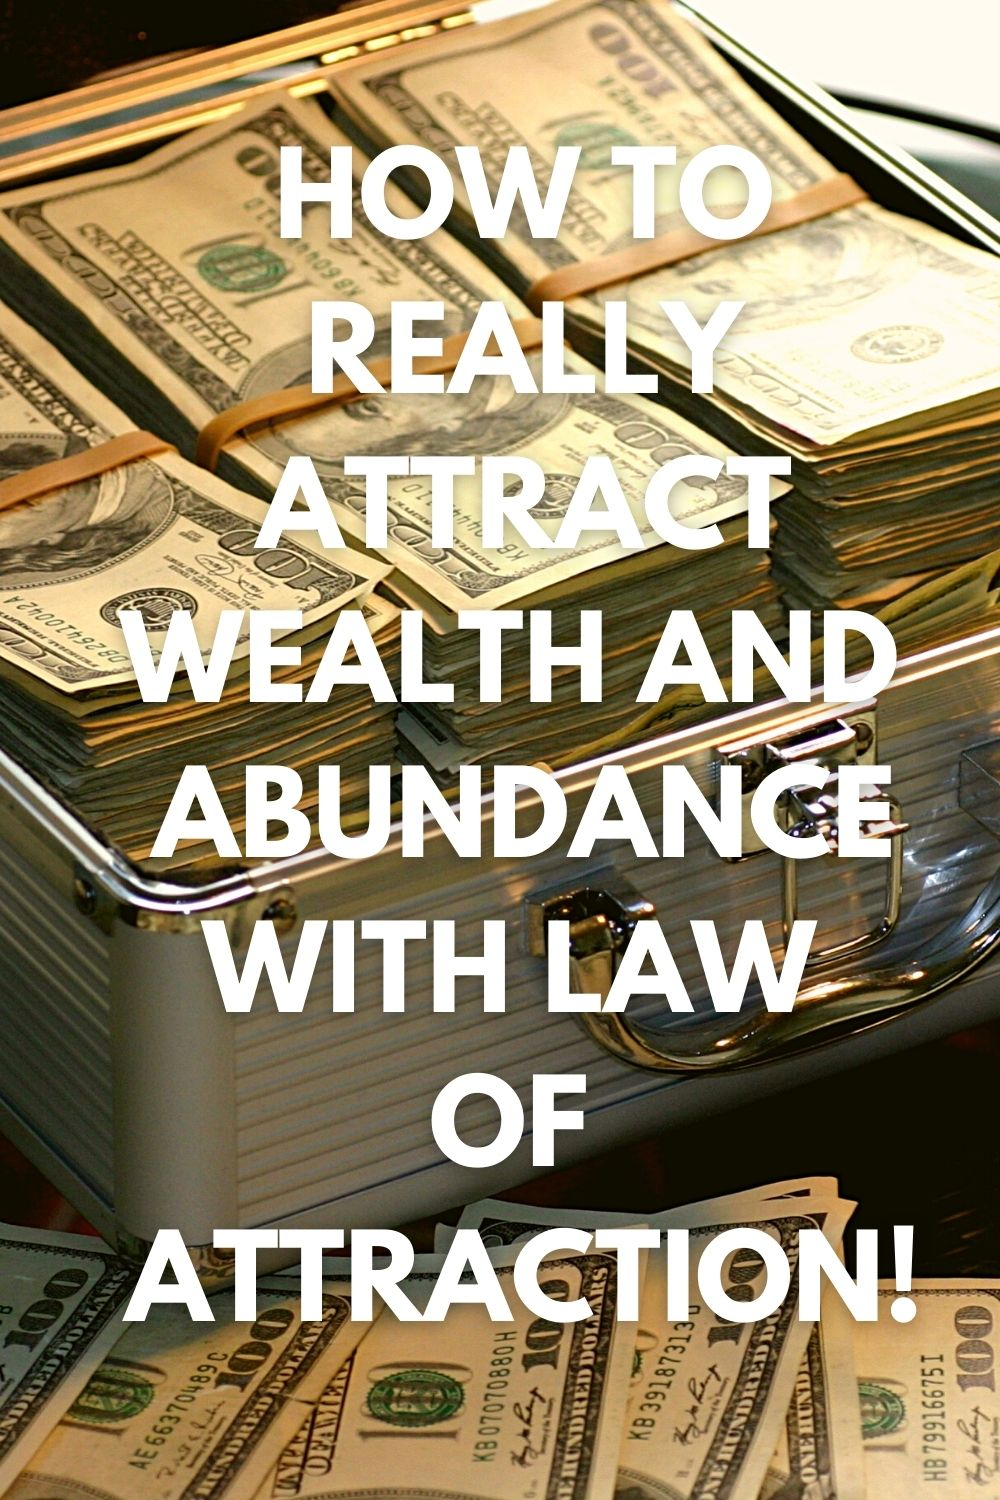 How to really attract wealth and abundance with law of attraction!